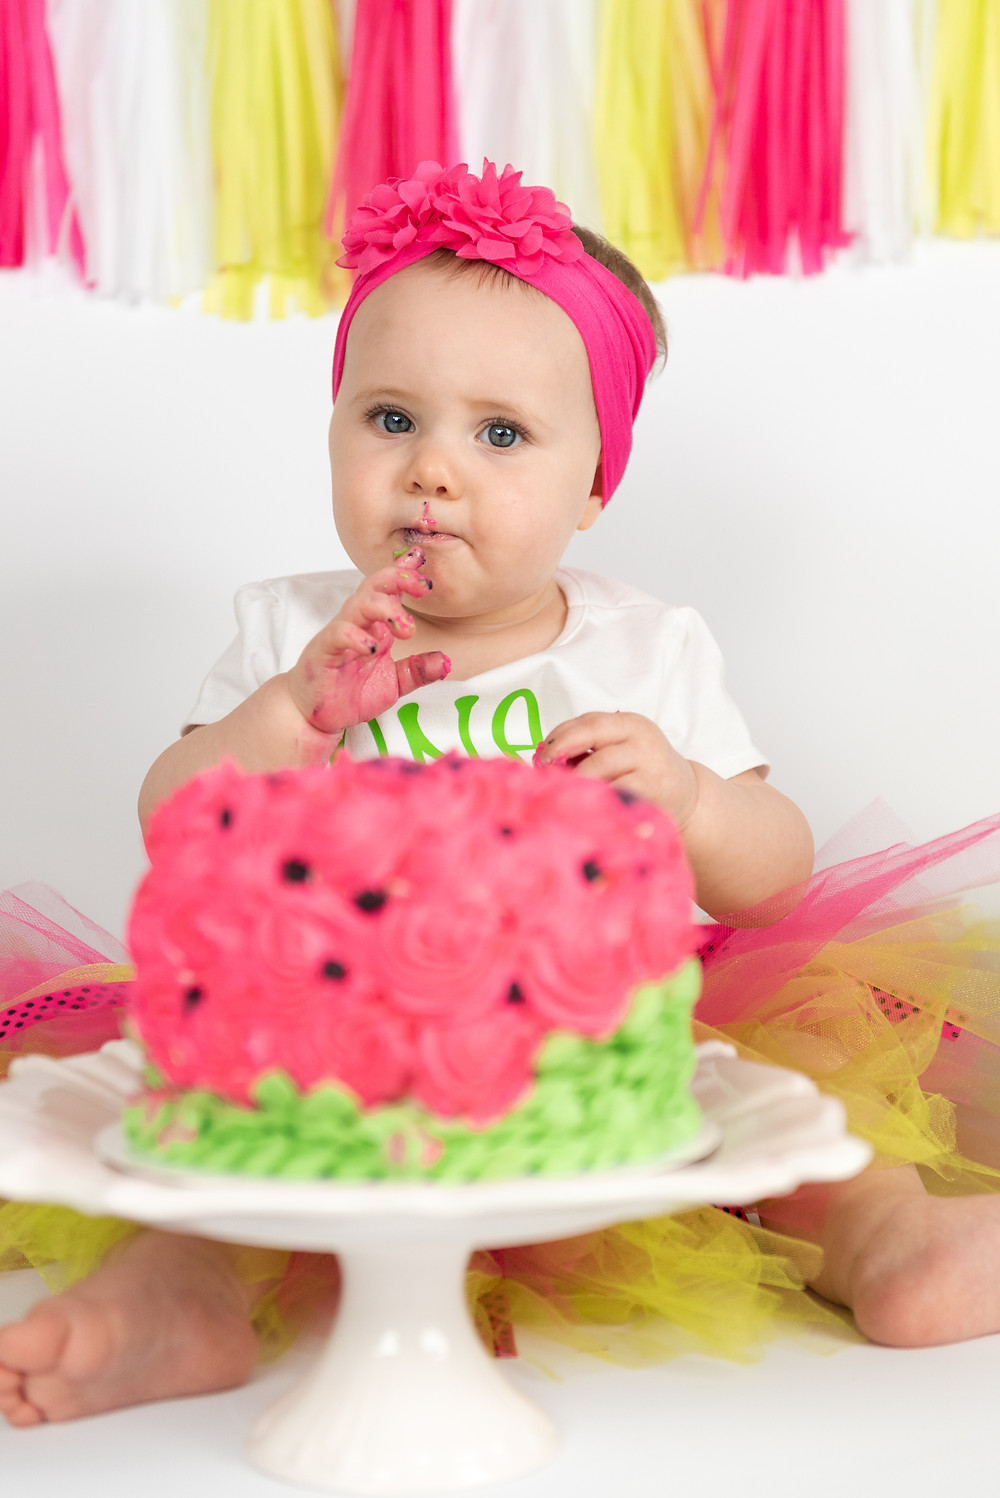 Baby girl getting messy during her watermelon themed cake smash photo session